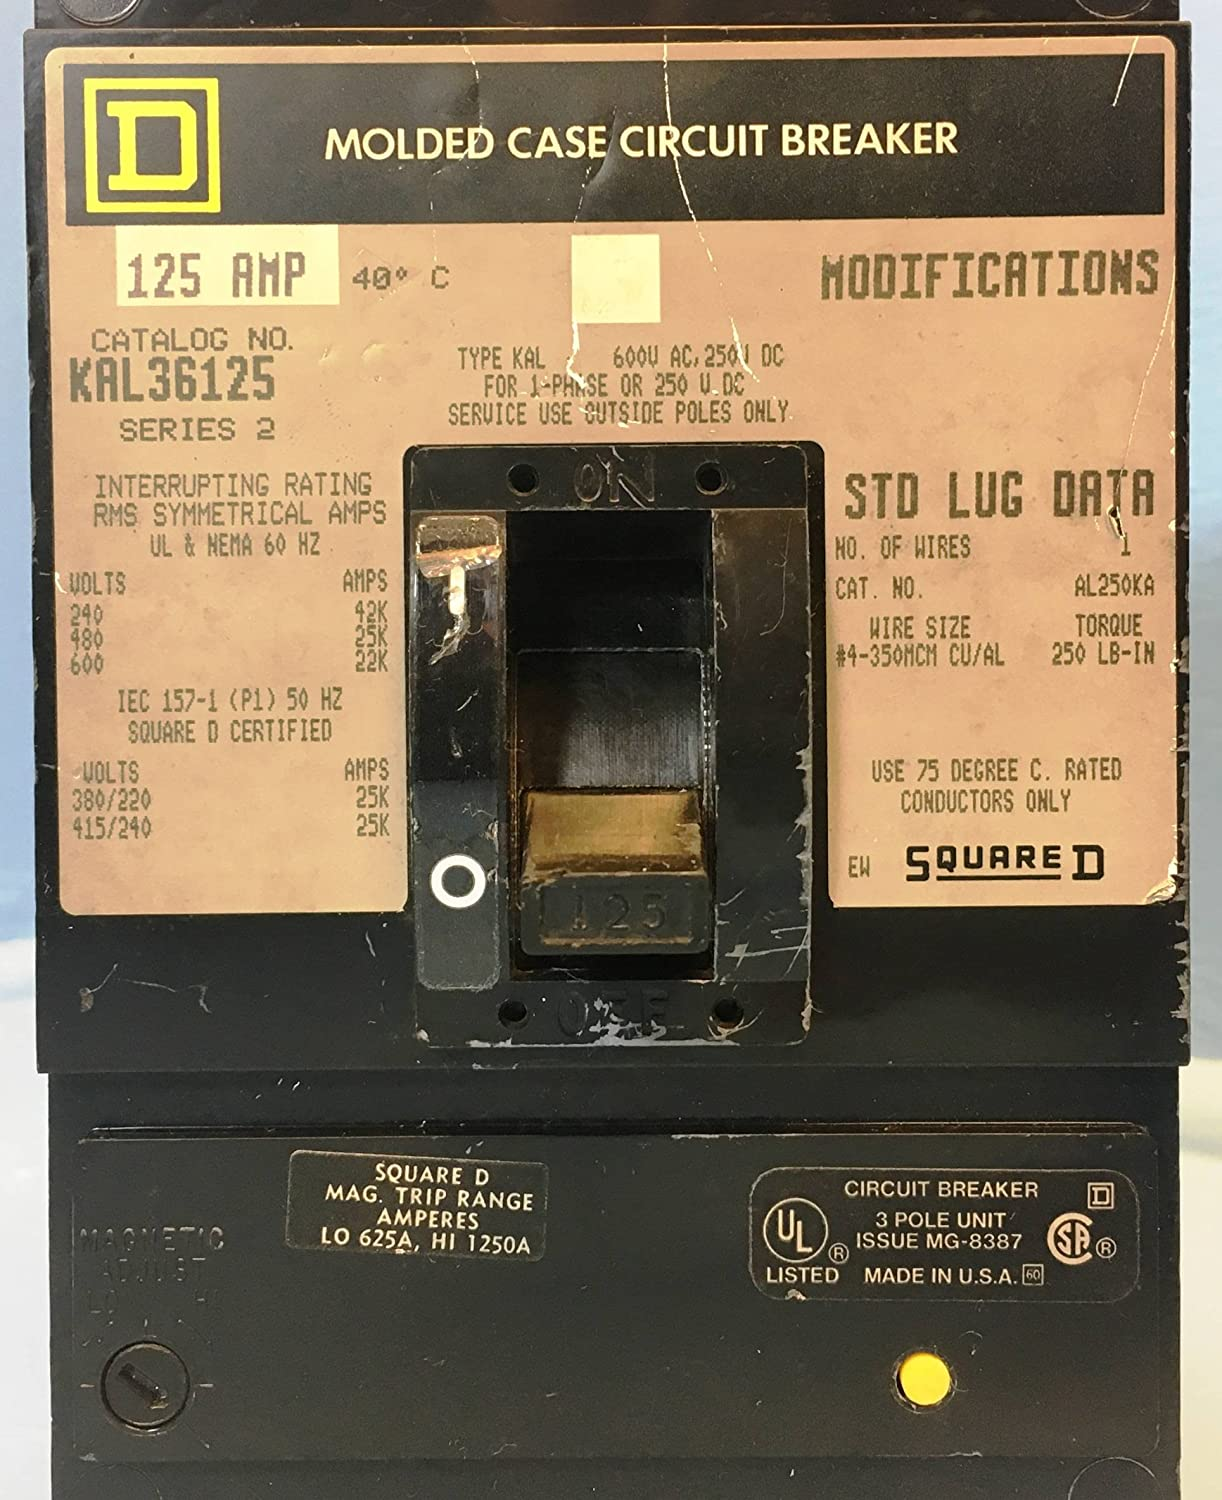 Square d kal36125 125a circuit breaker 600v 3 pole kal 36125 125 amp square d kal36125 125a circuit breaker 600v 3 pole kal 36125 125 amp bad label amazon industrial scientific keyboard keysfo